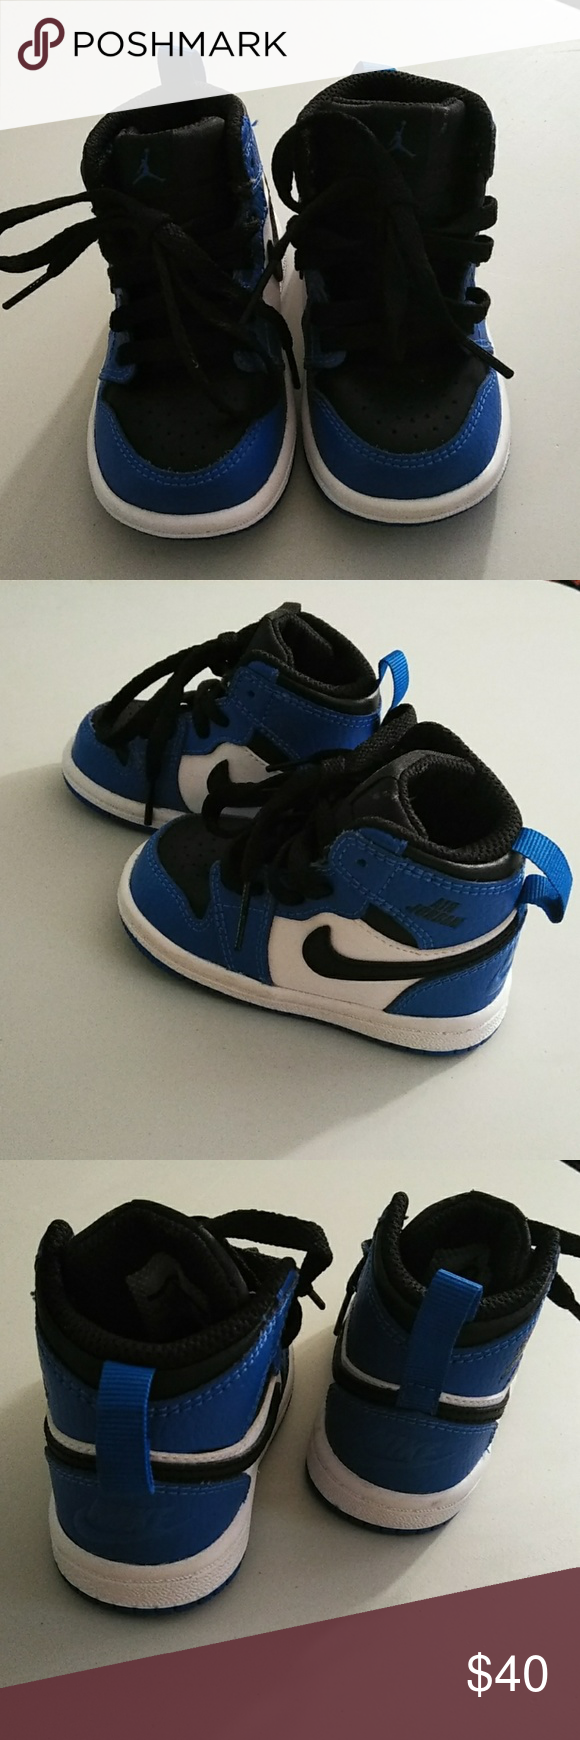 c5cca8c8e2aa Blue   black for babies. Size 4c. Baby Air Jordan 1 blue   black size 4c.  They are very very good condition but dont have the box. Jordan Shoes  Sneakers